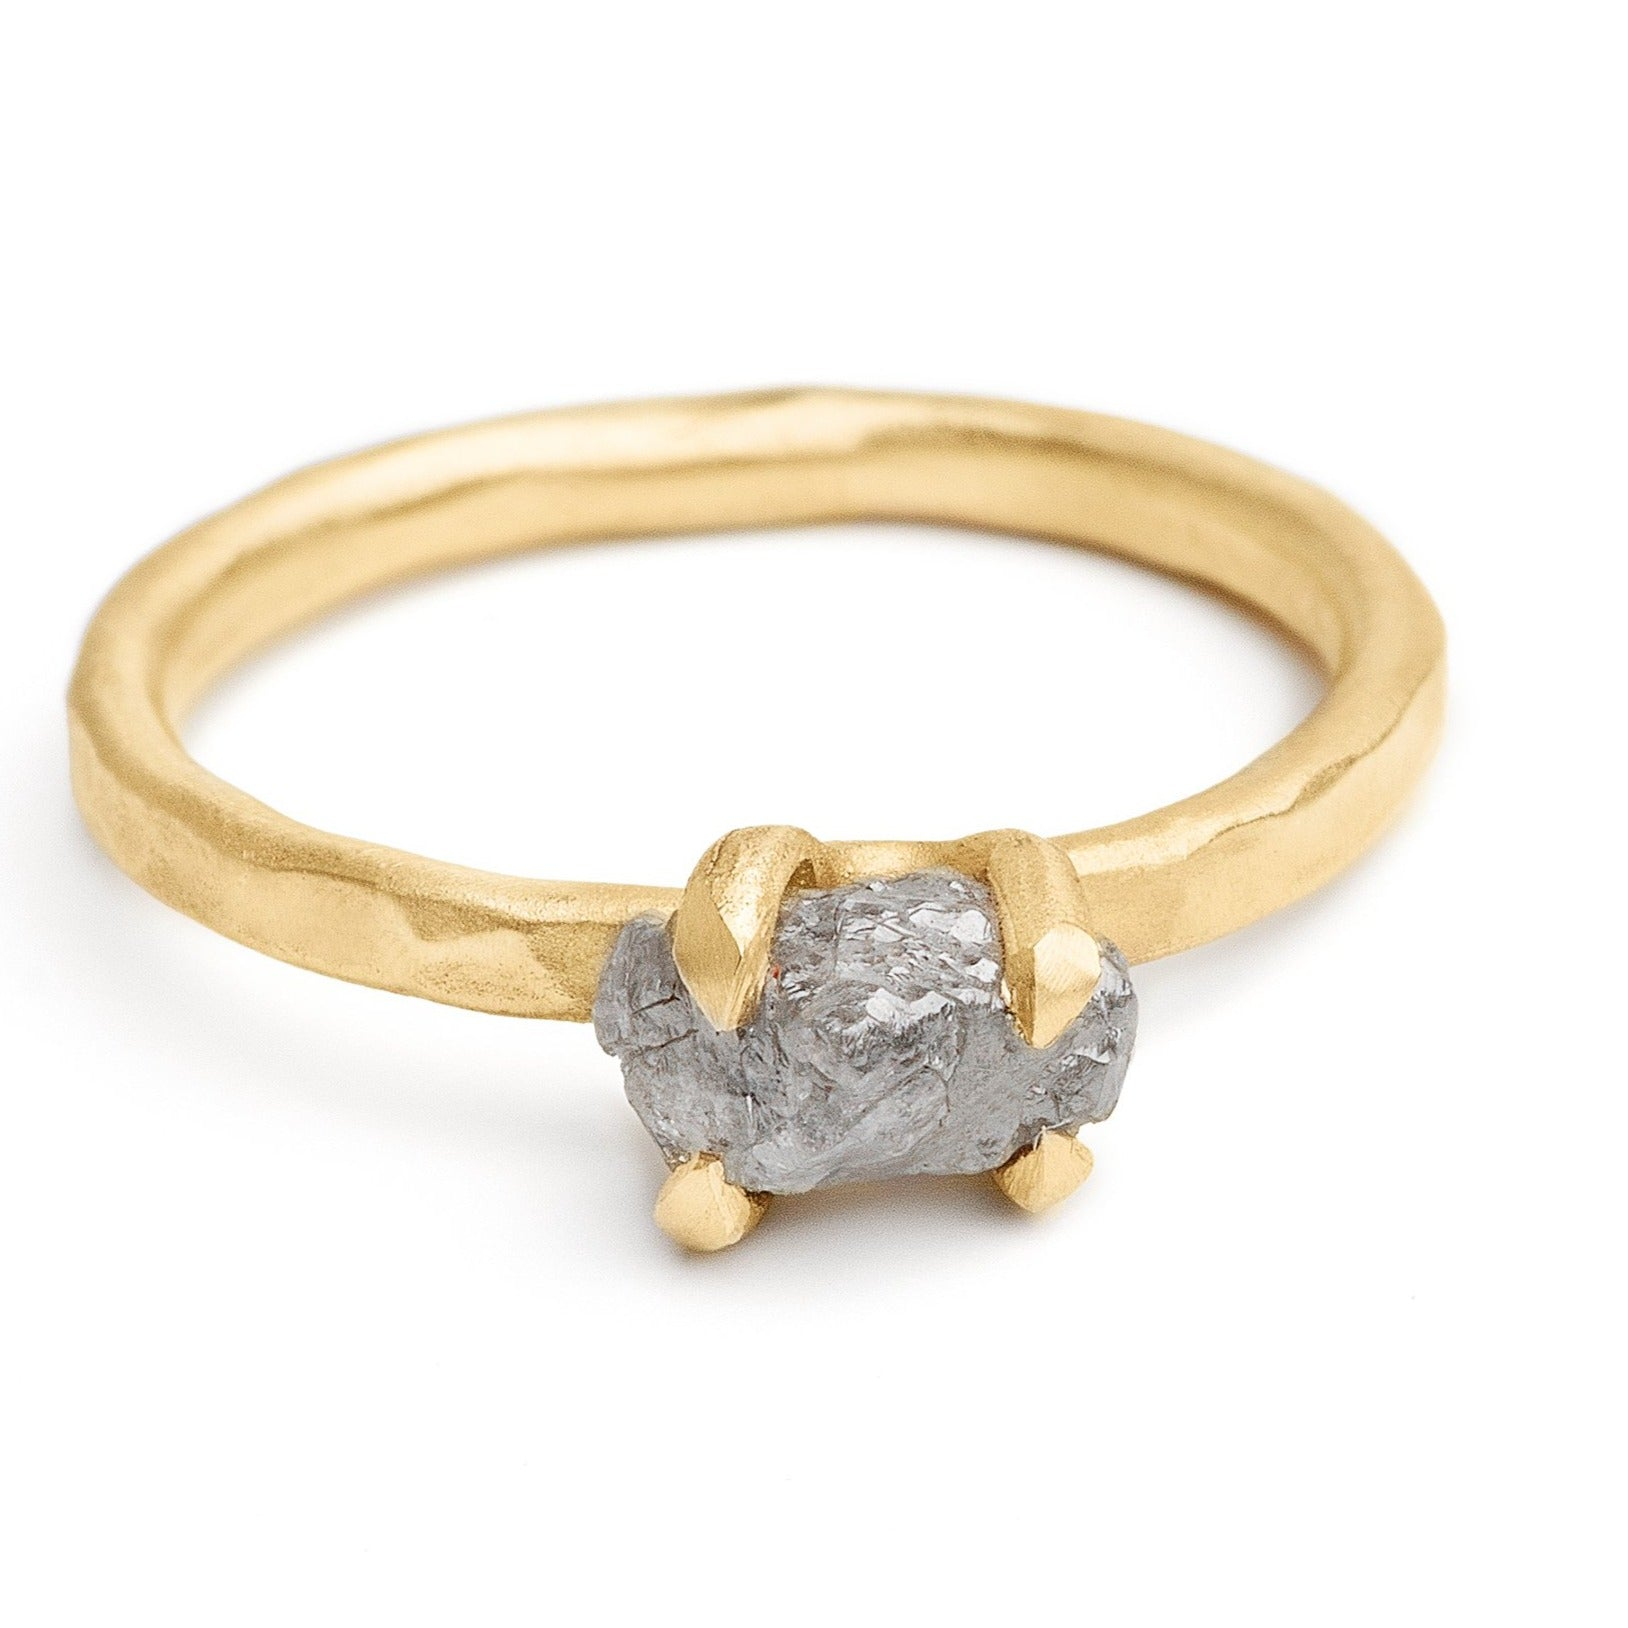 Rough grey diamond ring set in 14kt hammered yellow gold ring prong setting